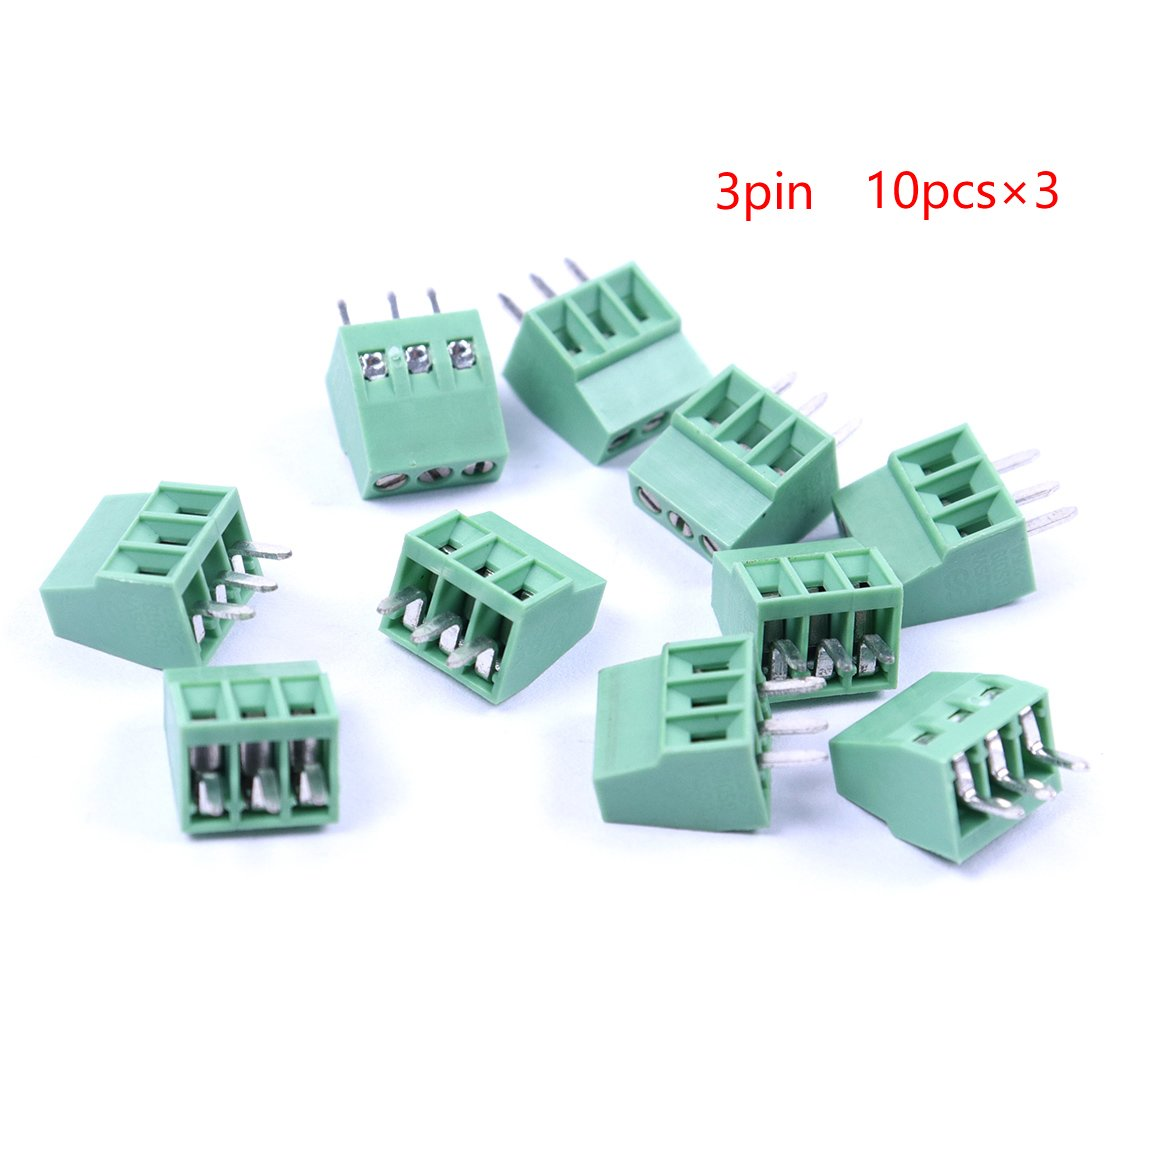 Atoplee  30pcs 3 Pole 2.54mm Pitch PCB Mount Screw Terminal Block Connector